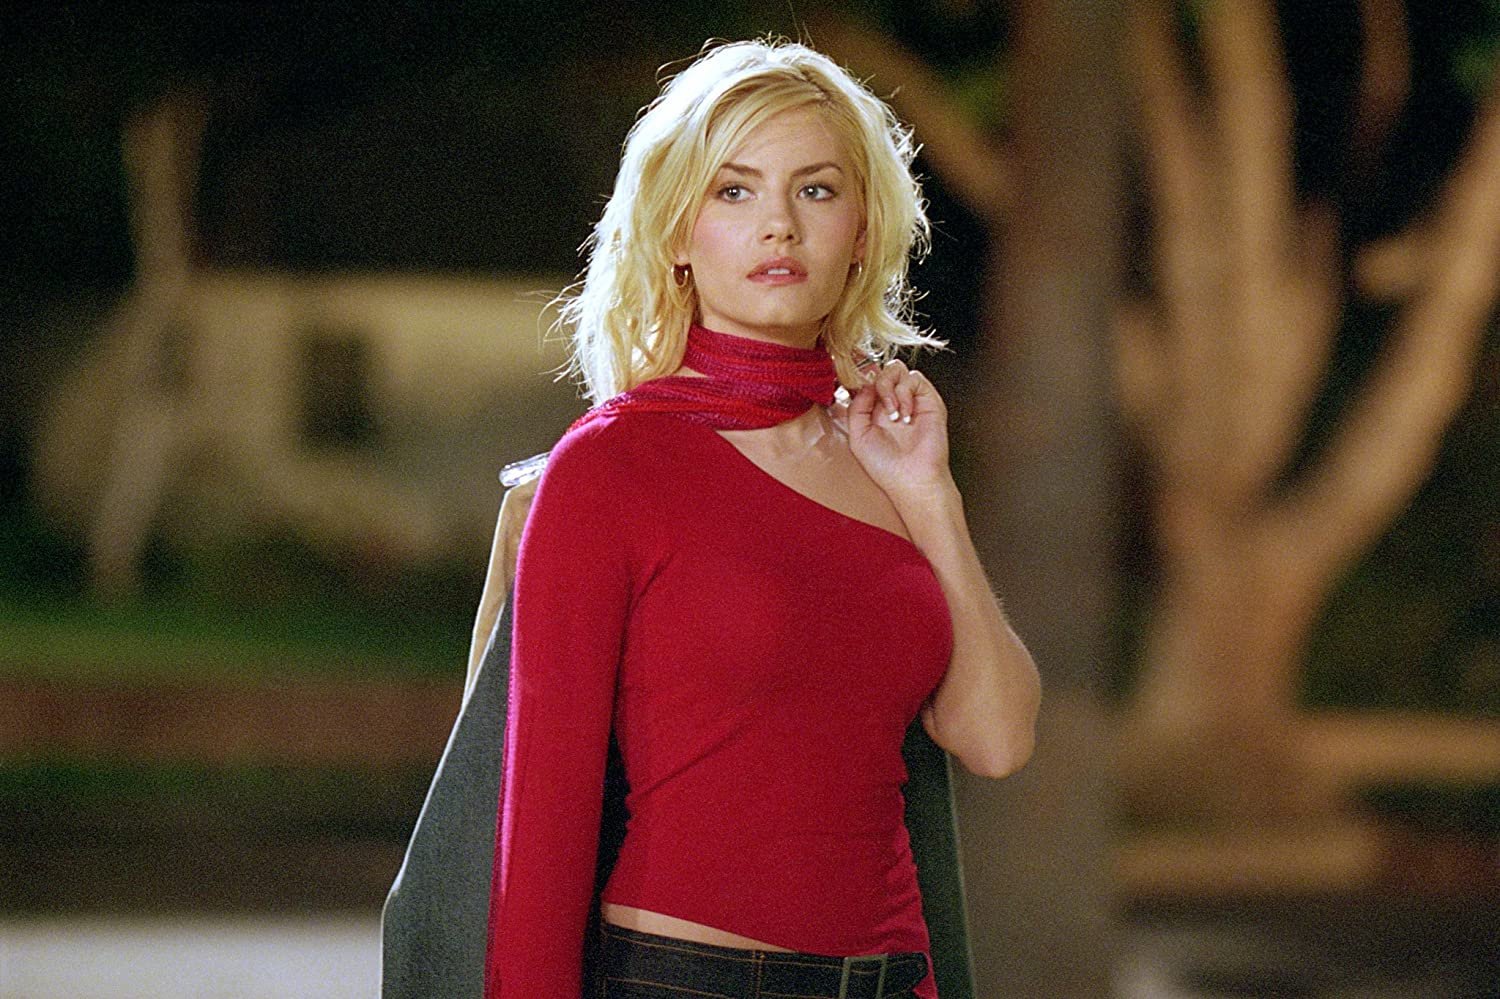 Image result for elisha cuthbert the girl next door